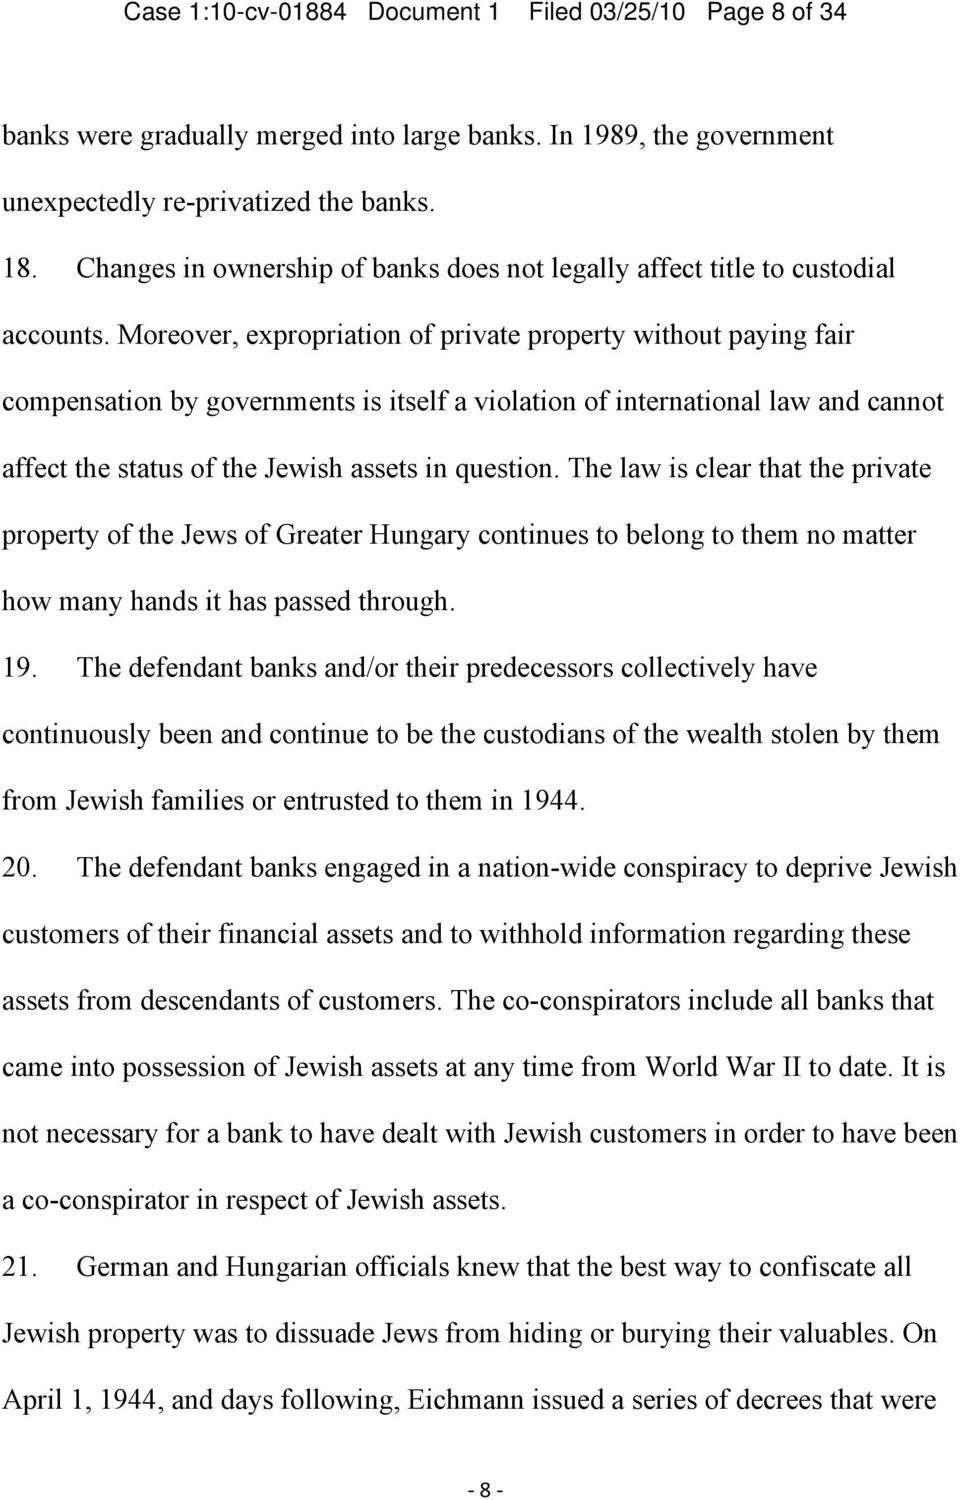 Moreover, expropriation of private property without paying fair compensation by governments is itself a violation of international law and cannot affect the status of the Jewish assets in question.